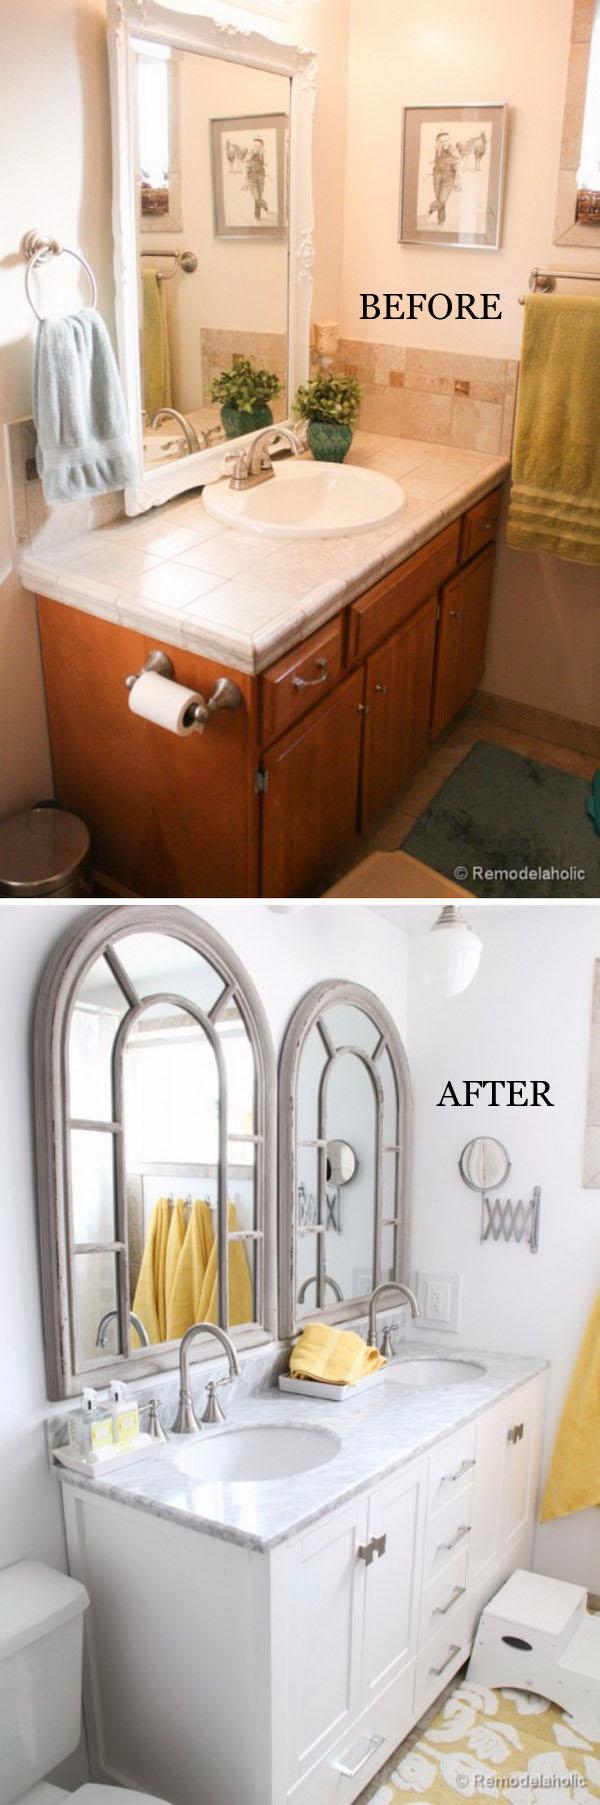 From Single Sink Vanity to Double Sink Bathroom Remodel.